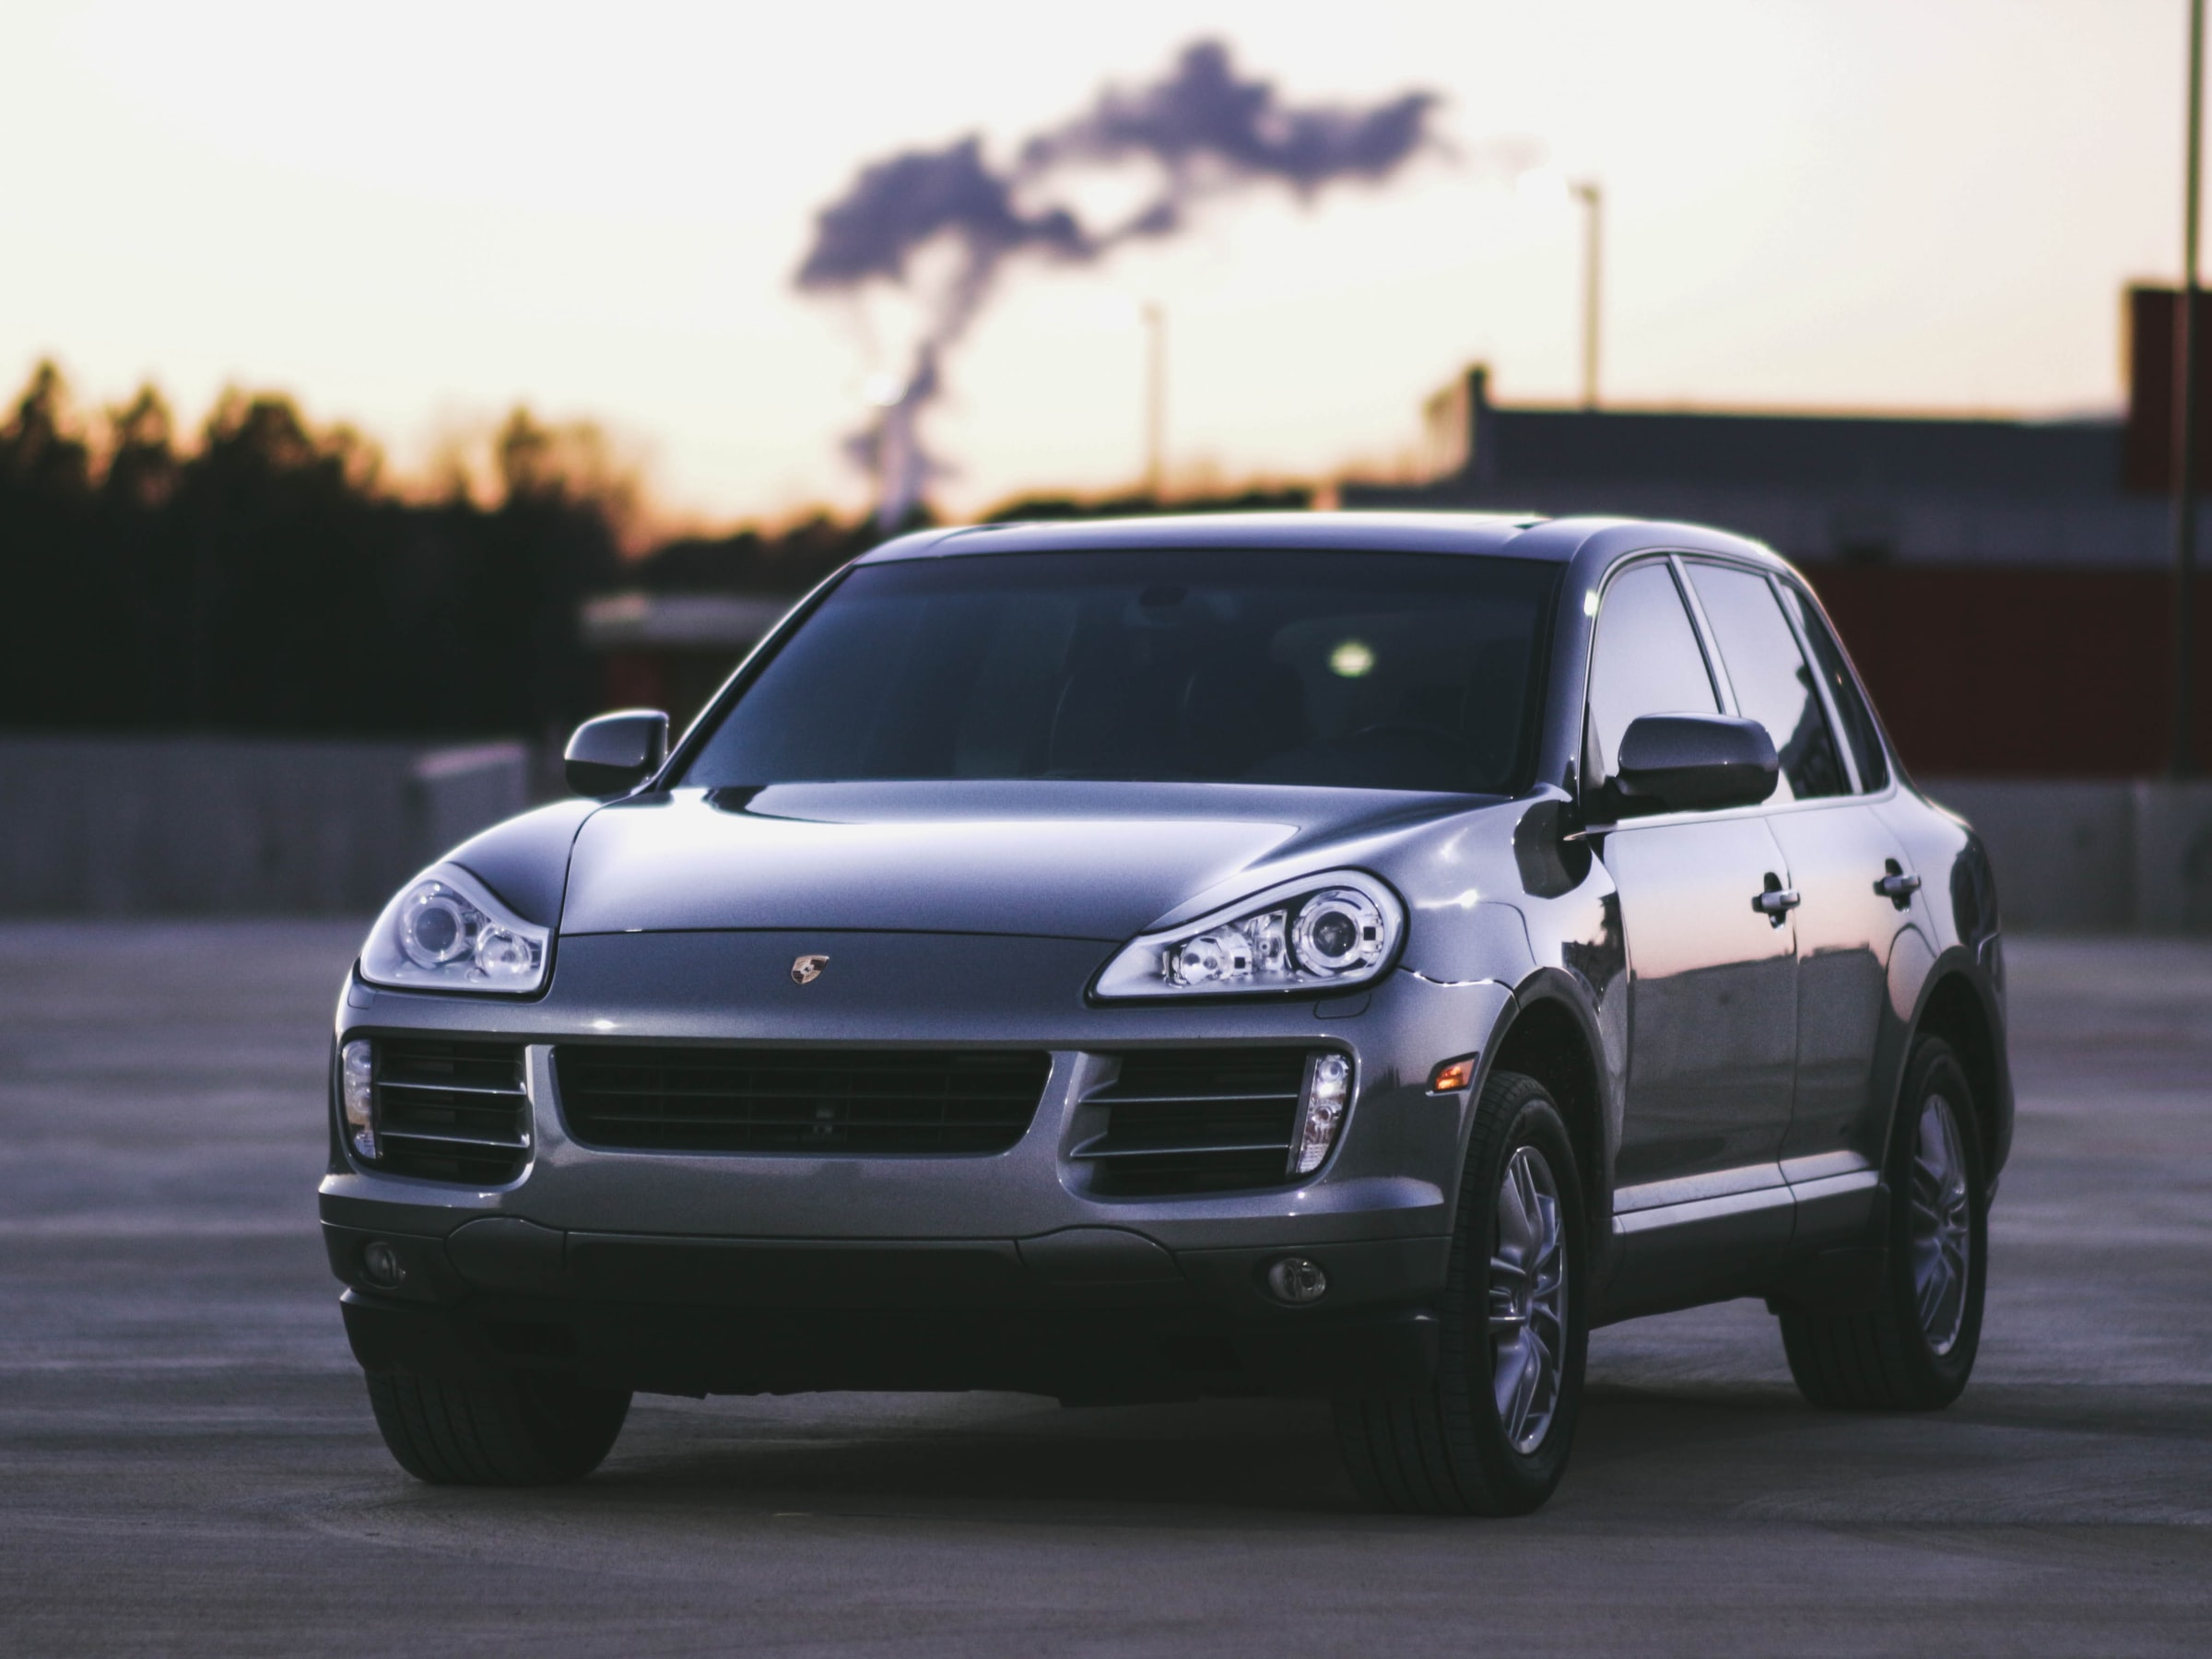 Porsche Cayenne Is Coming Out With An EV Alternate! Power The Legacy